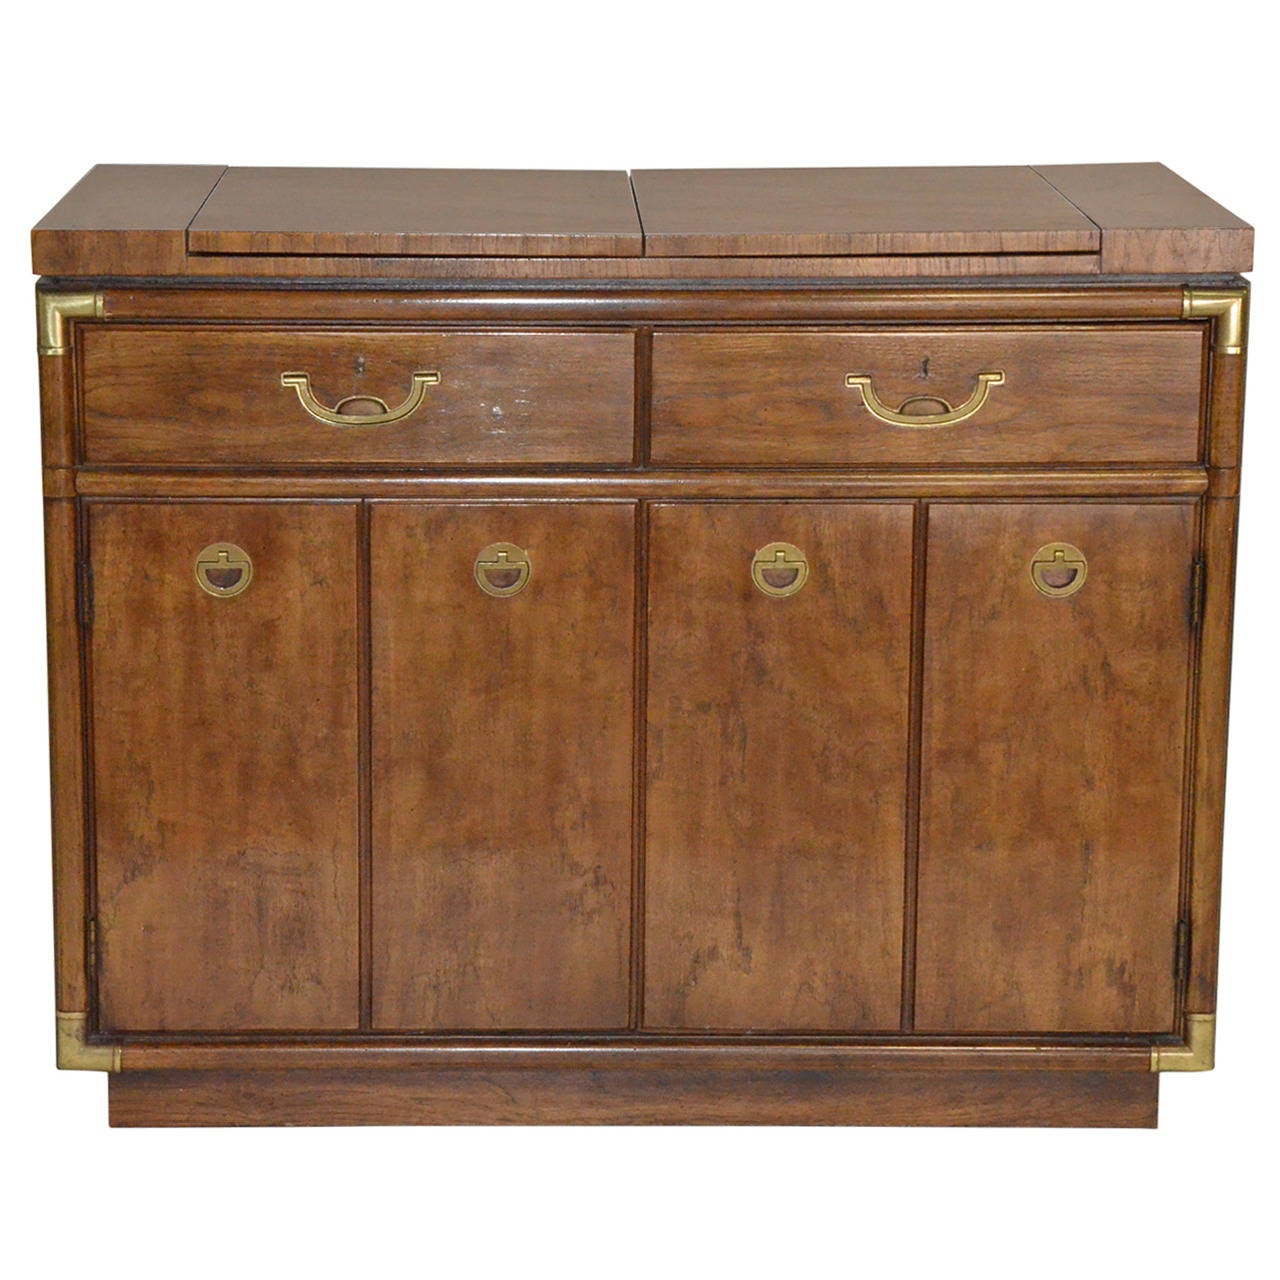 drexel heritage sideboard or buffet on rollers at 1stdibs. Black Bedroom Furniture Sets. Home Design Ideas